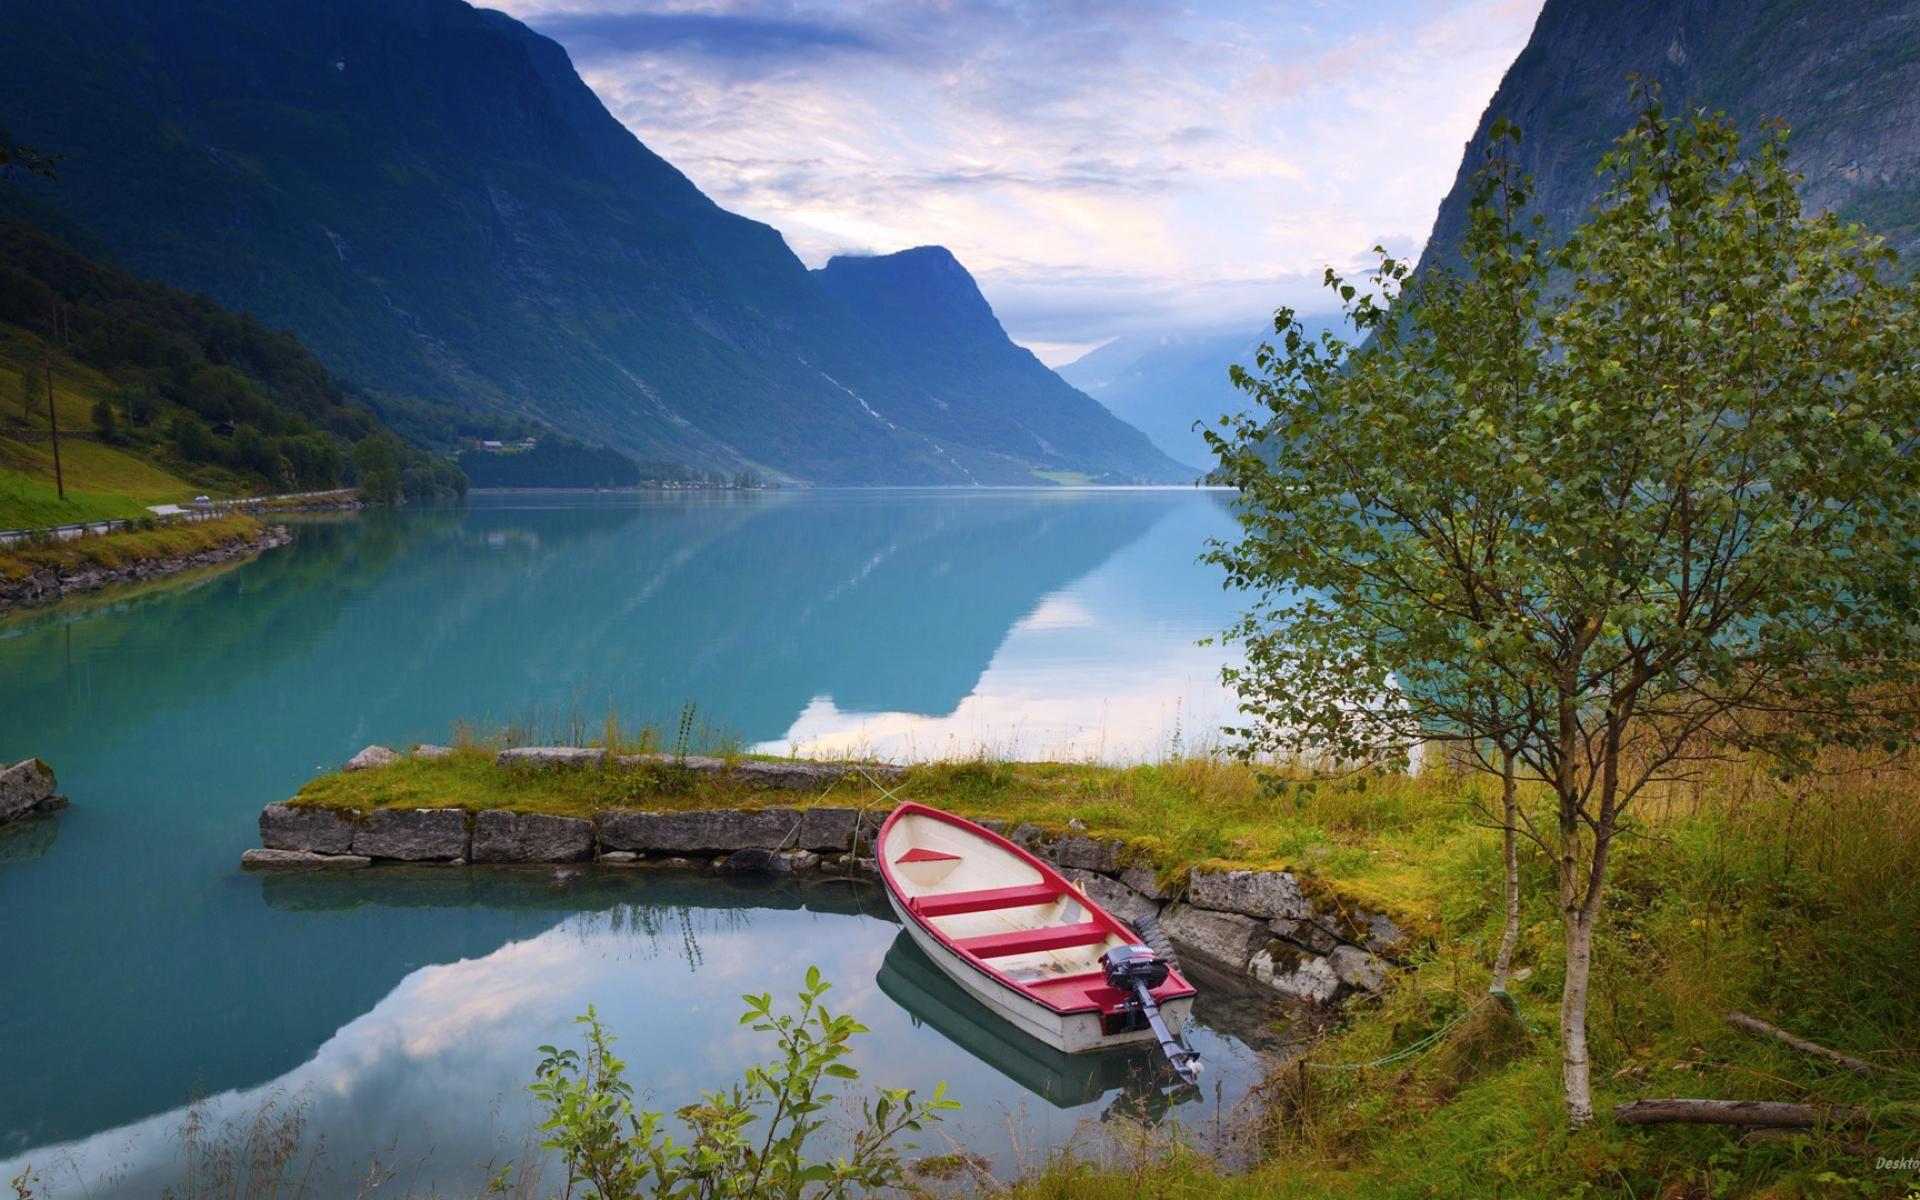 The Scenery The Natural Scenery Of Norway Hd Wallpaper